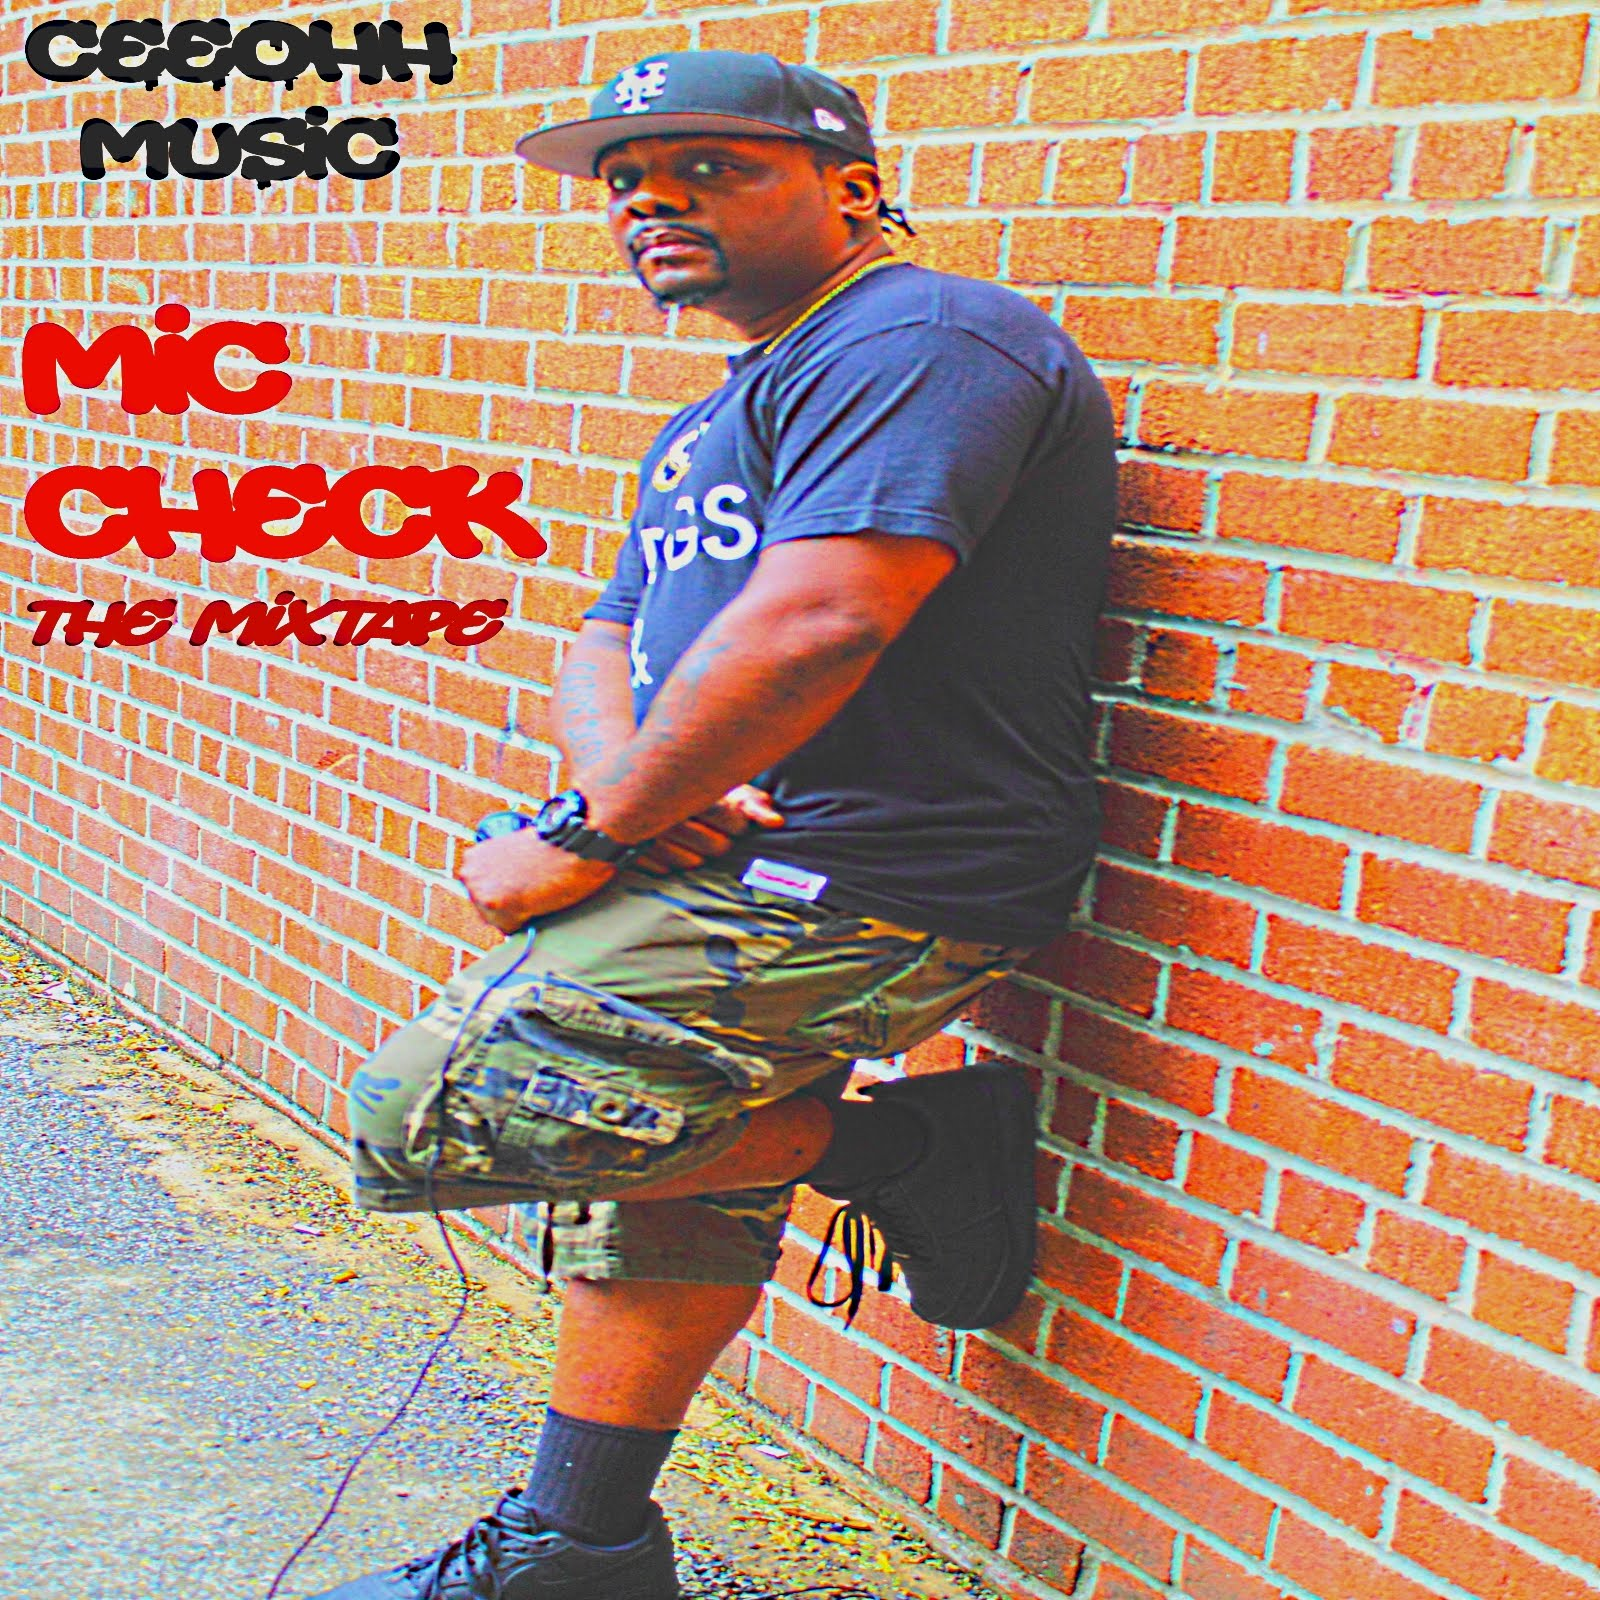 CEEOHH MUSIC | Mic Check: The Mixtape